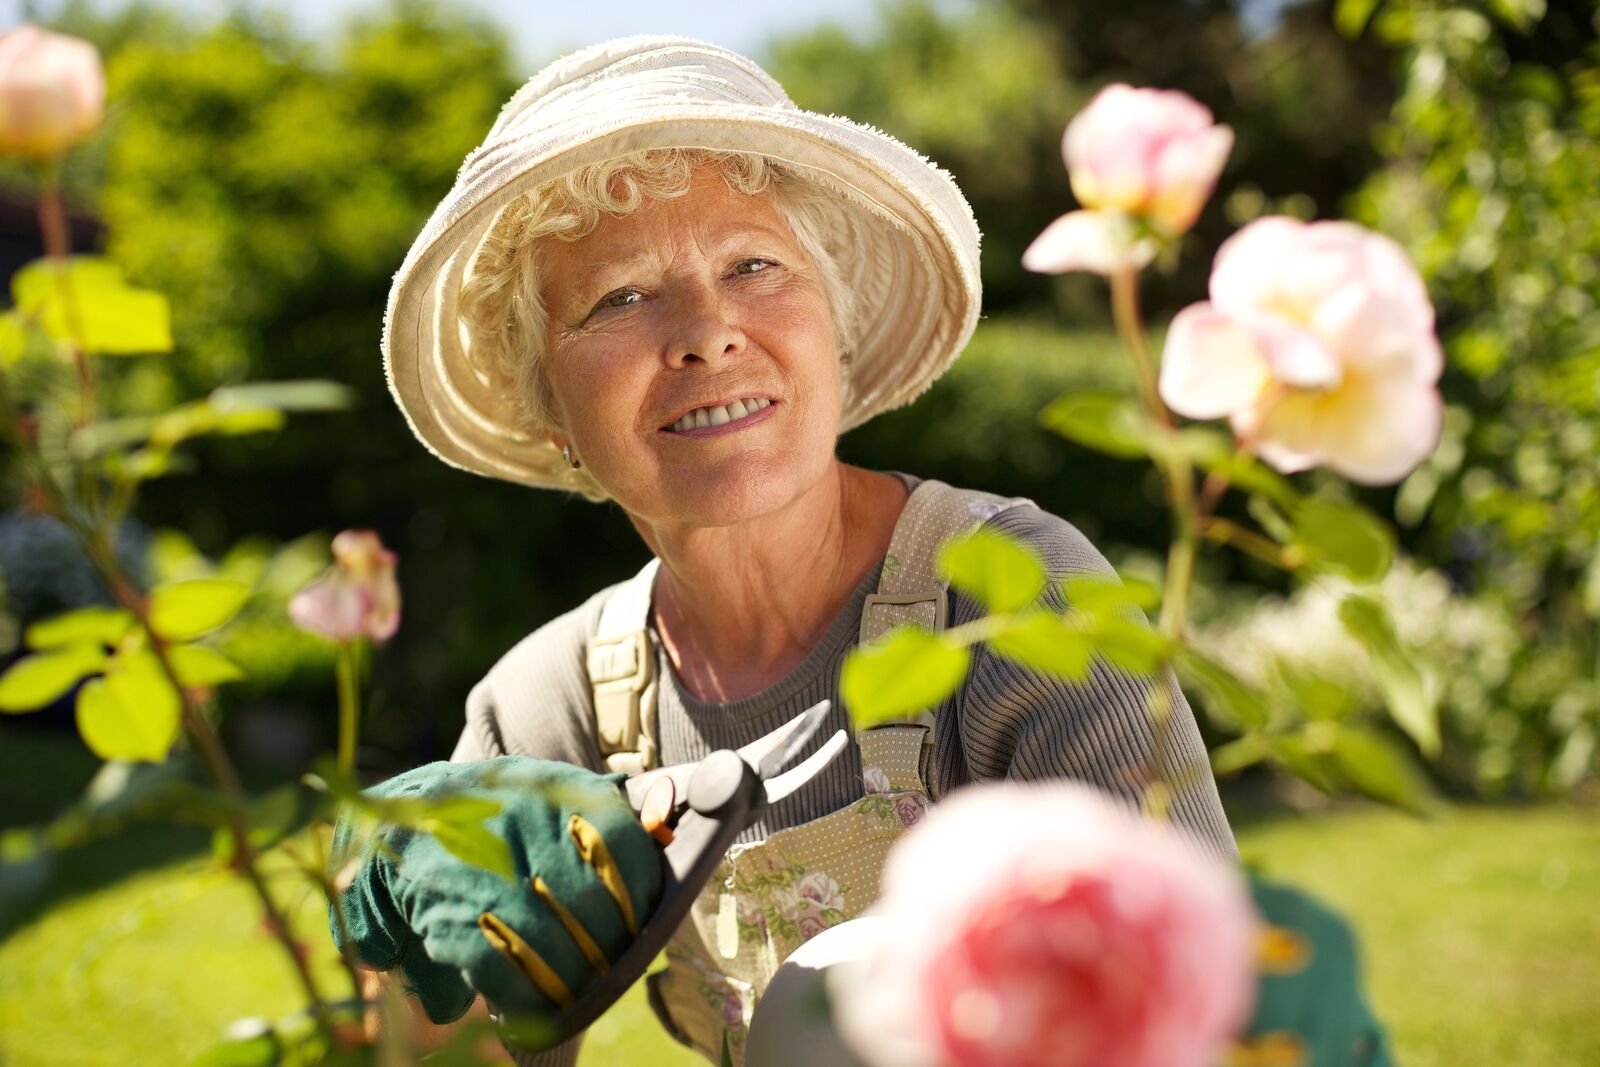 Senior Care in Commack NY: Senior Benefits Of Outdoor Activities